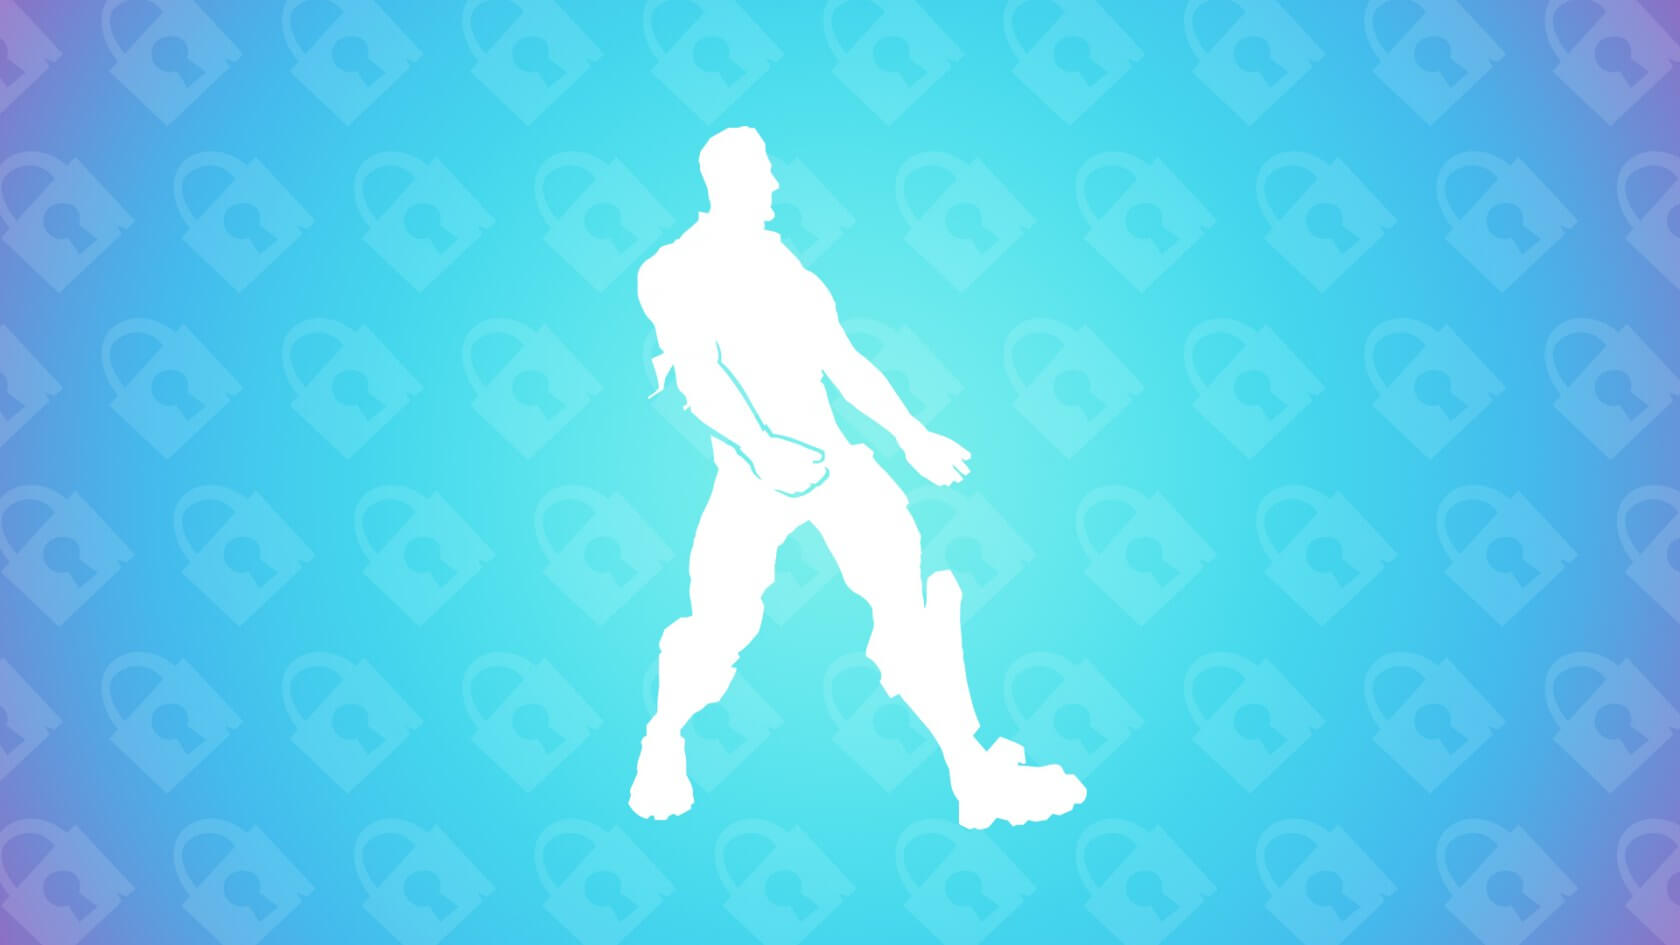 Fortnite has a giveaway if you enable two-factor authentication